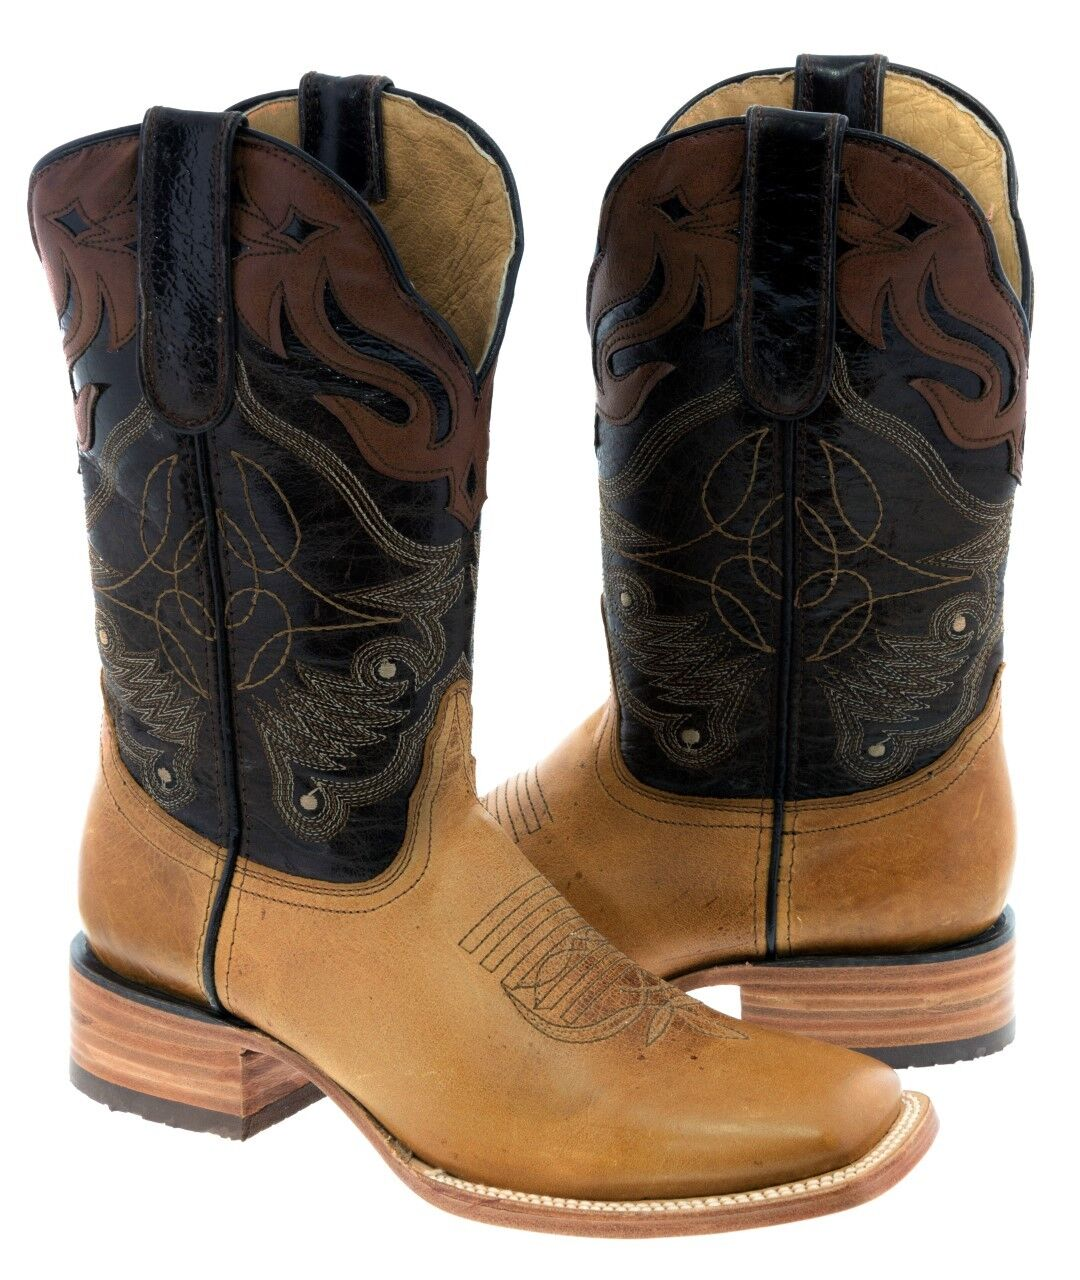 Mens Honey Cognac Real Leather Cowboy Stiefel Overlay Stitched Riding Square Toe